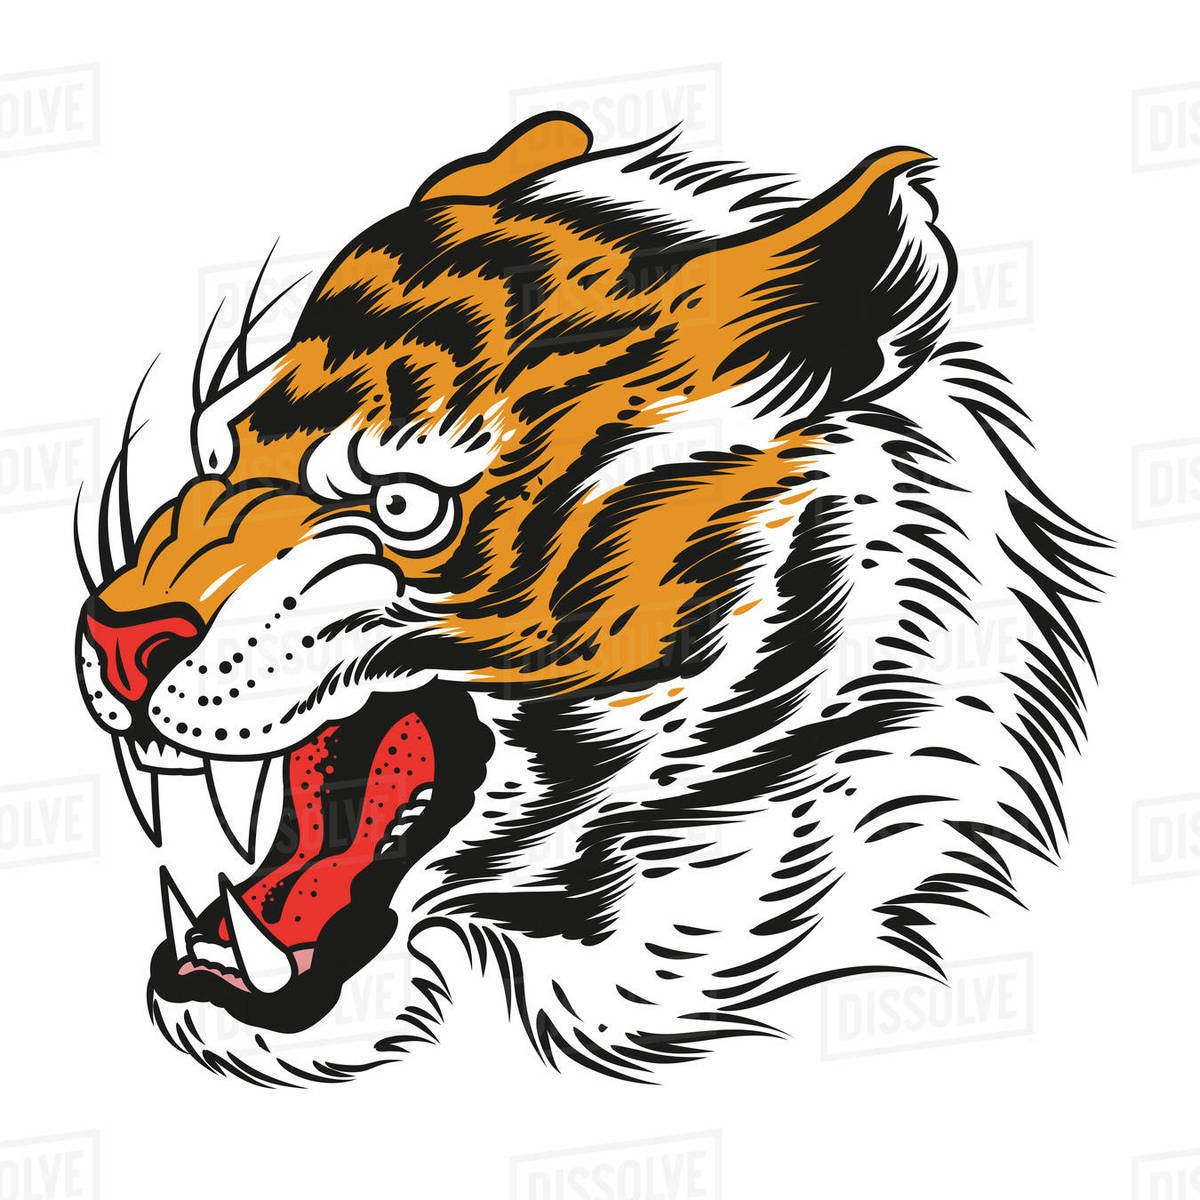 Illustration of a tiger head against white background Royalty-free stock photo